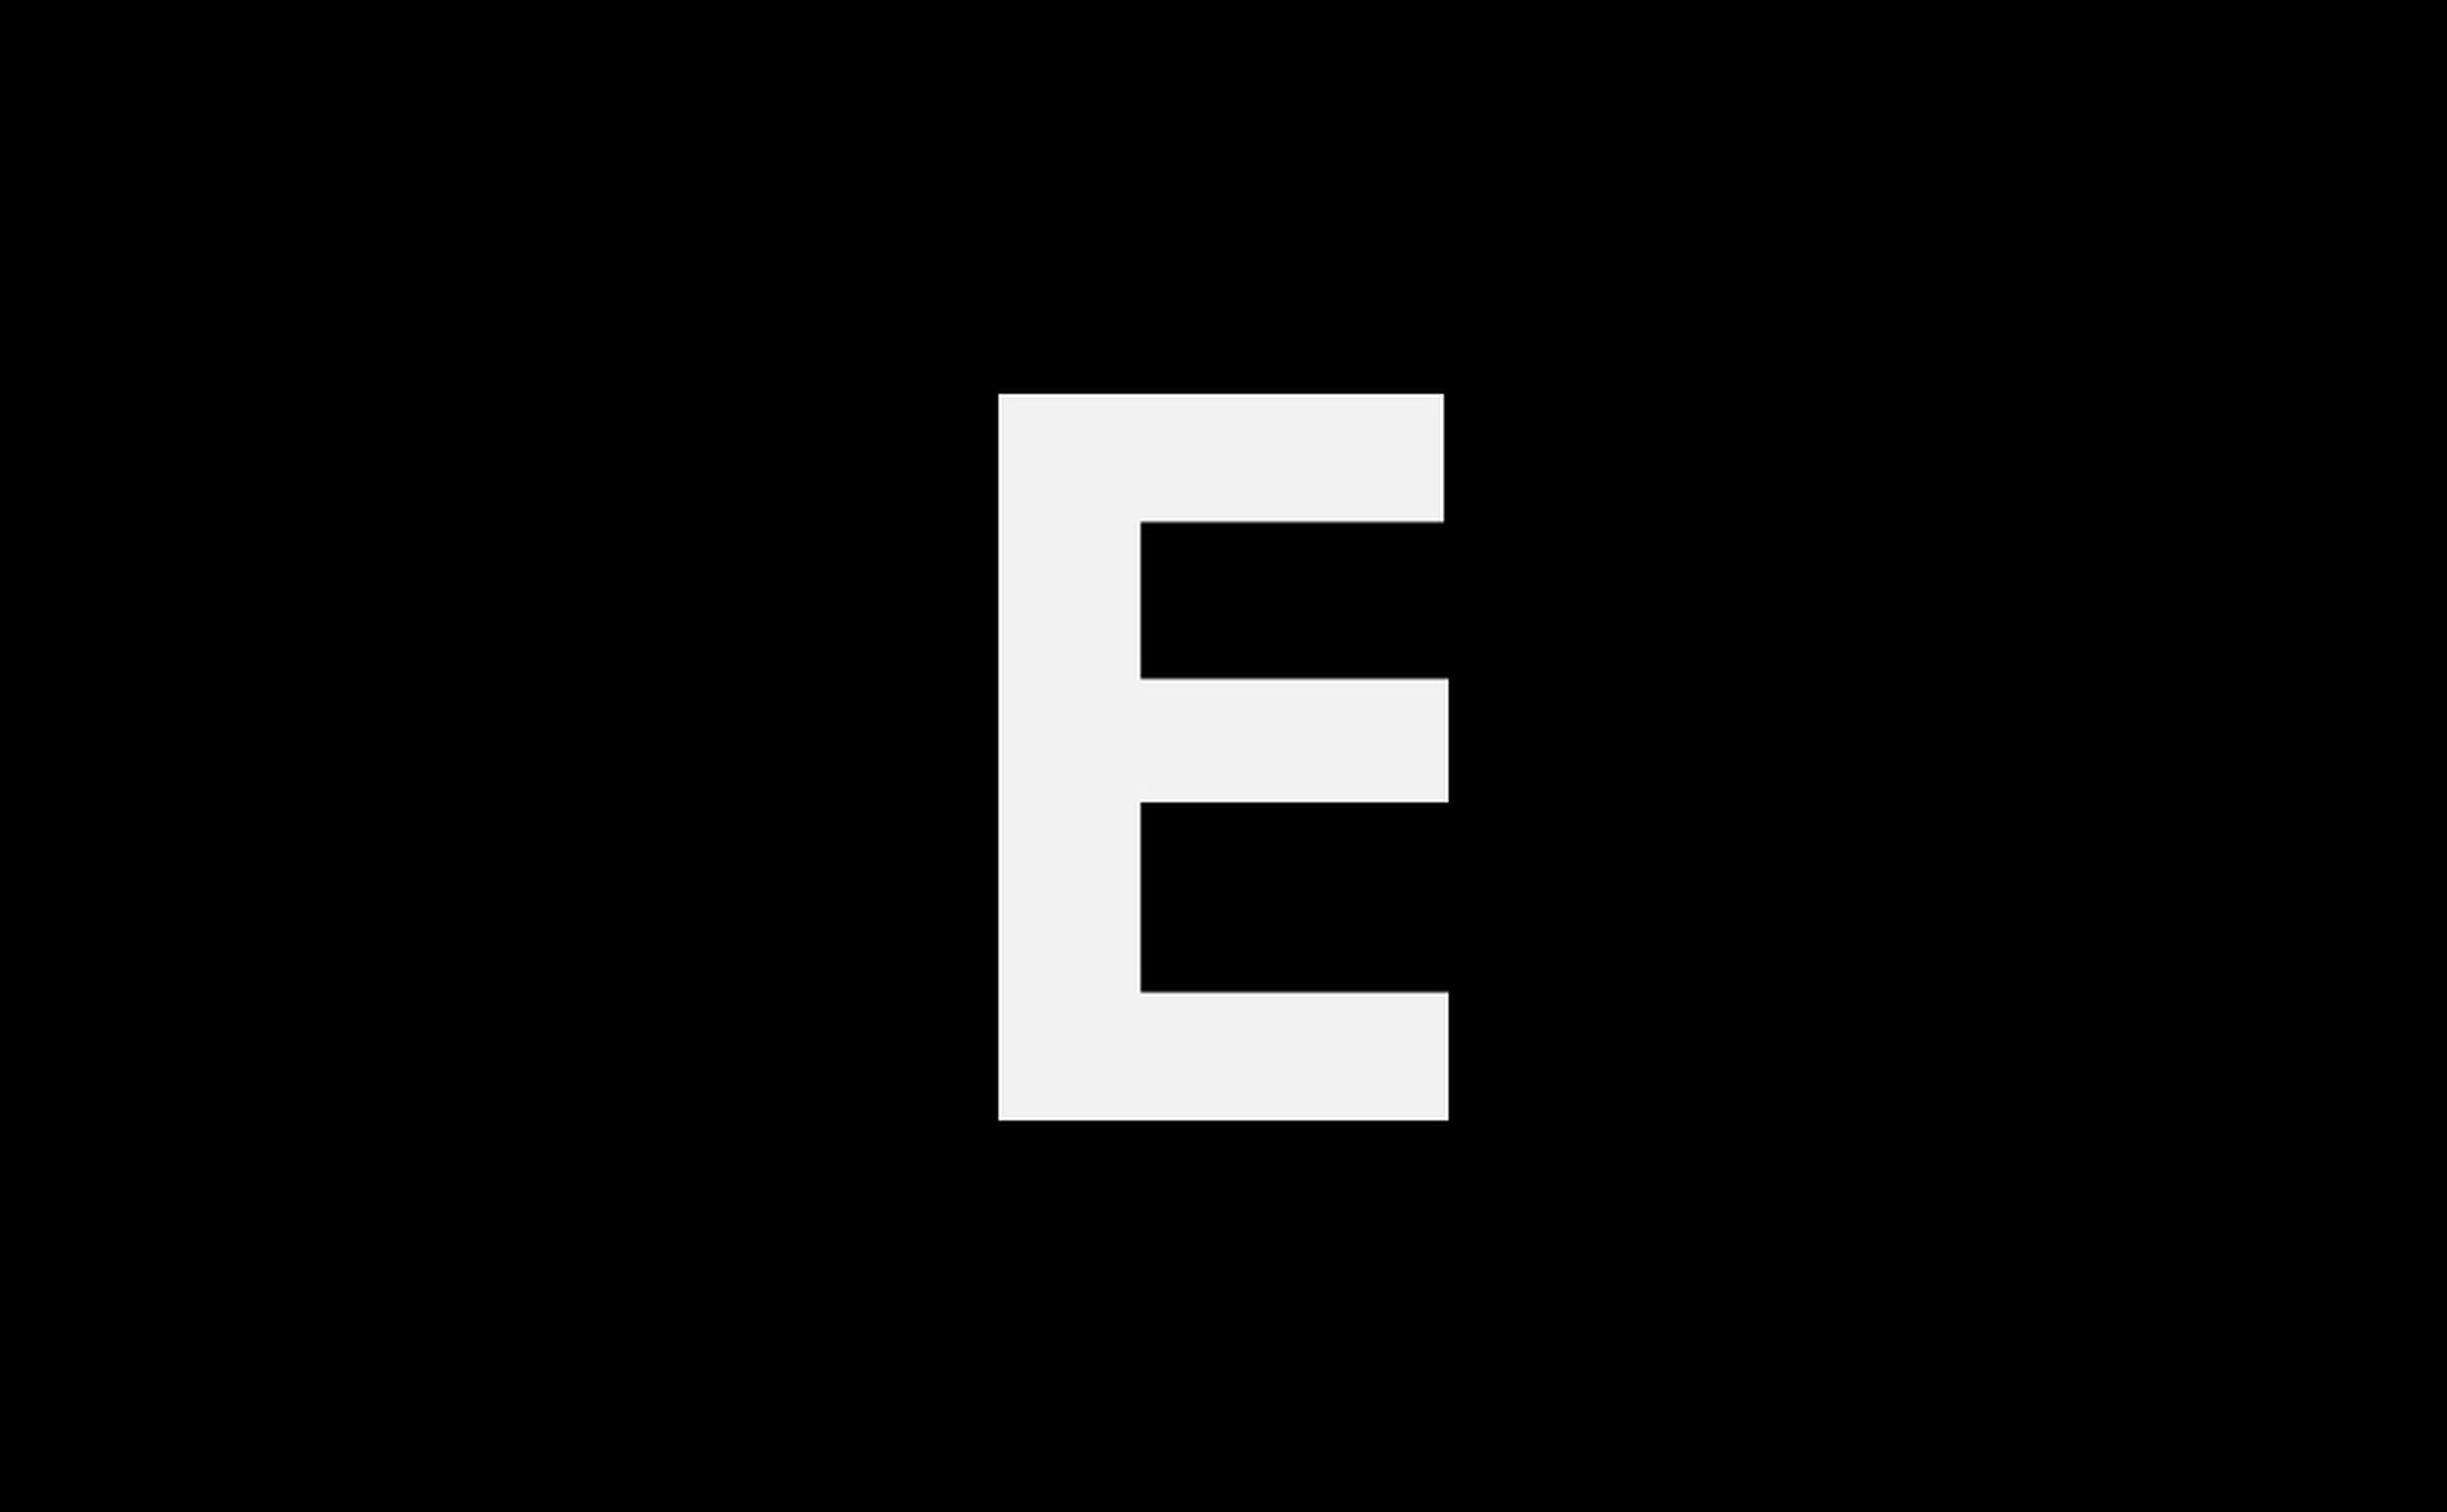 GROUP OF PEOPLE ON STREET AGAINST CITY